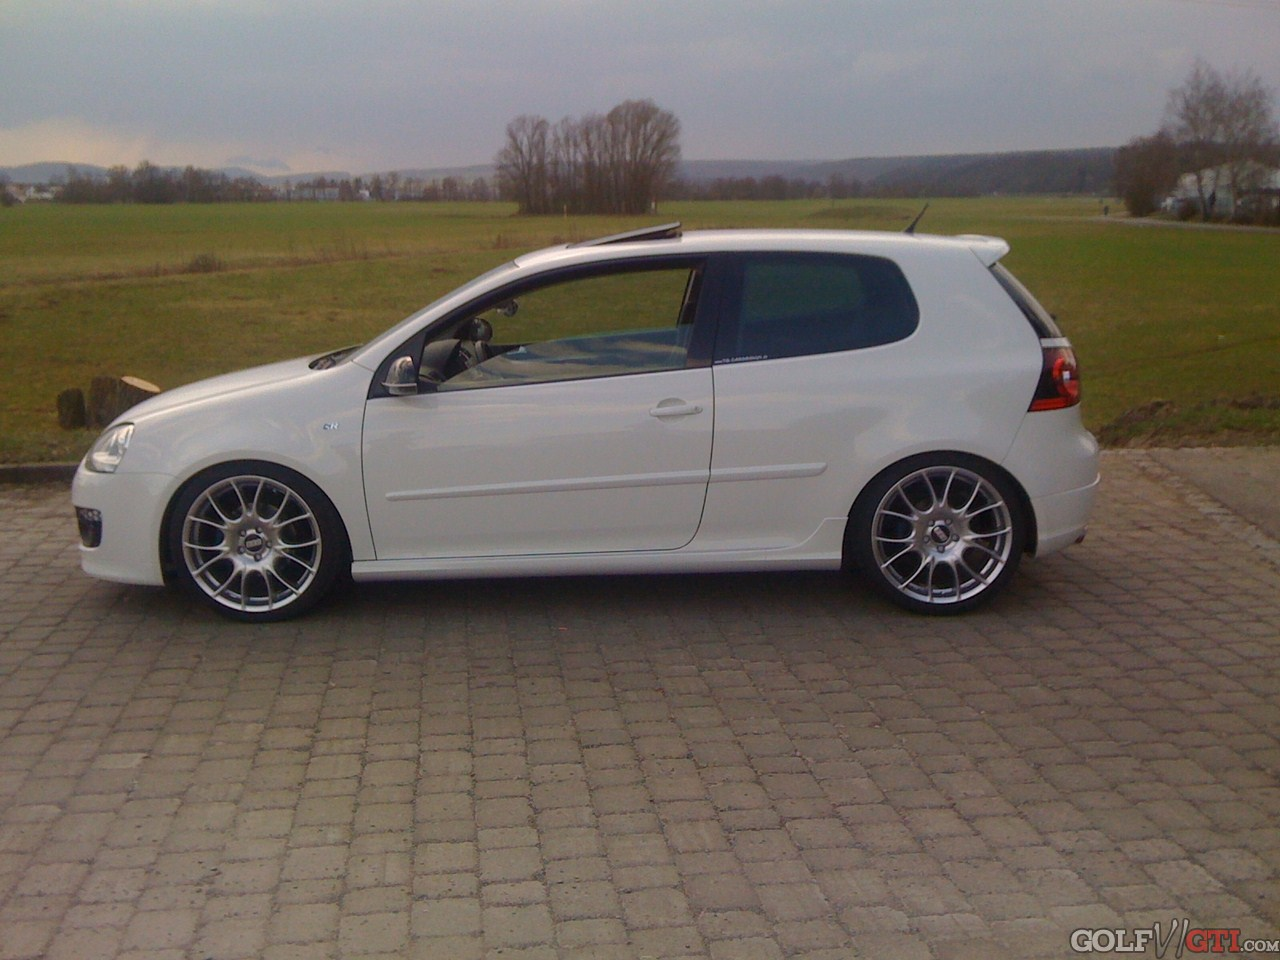 suche bilder von weissem gti mit 19 bbs ch golf vi gti. Black Bedroom Furniture Sets. Home Design Ideas